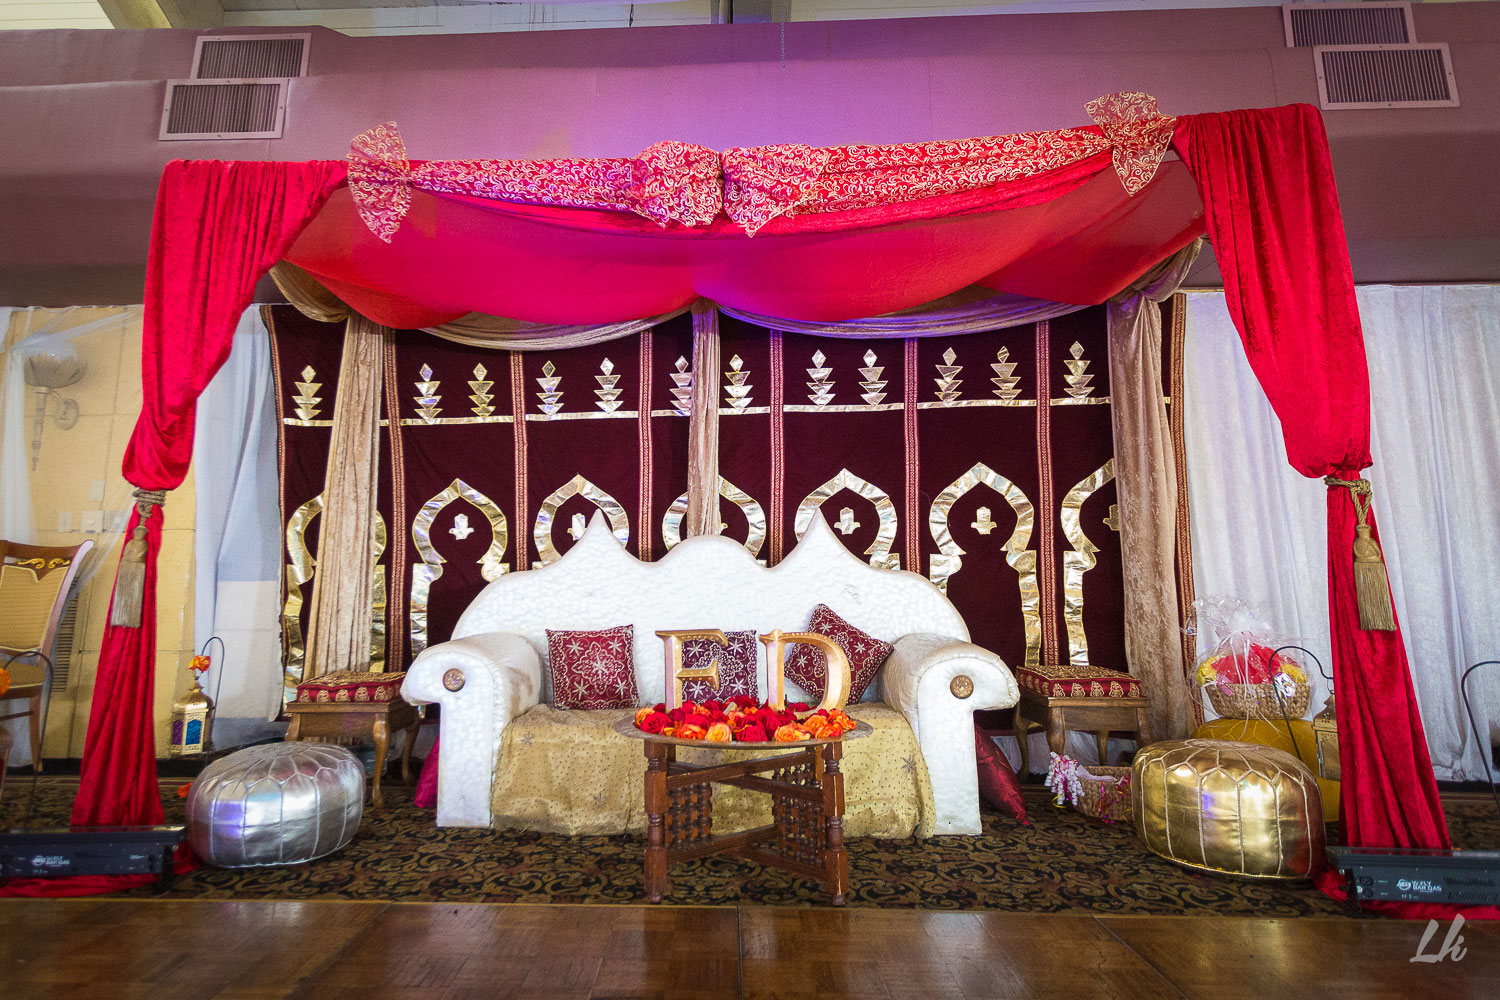 Moroccan inspired wedding celebration